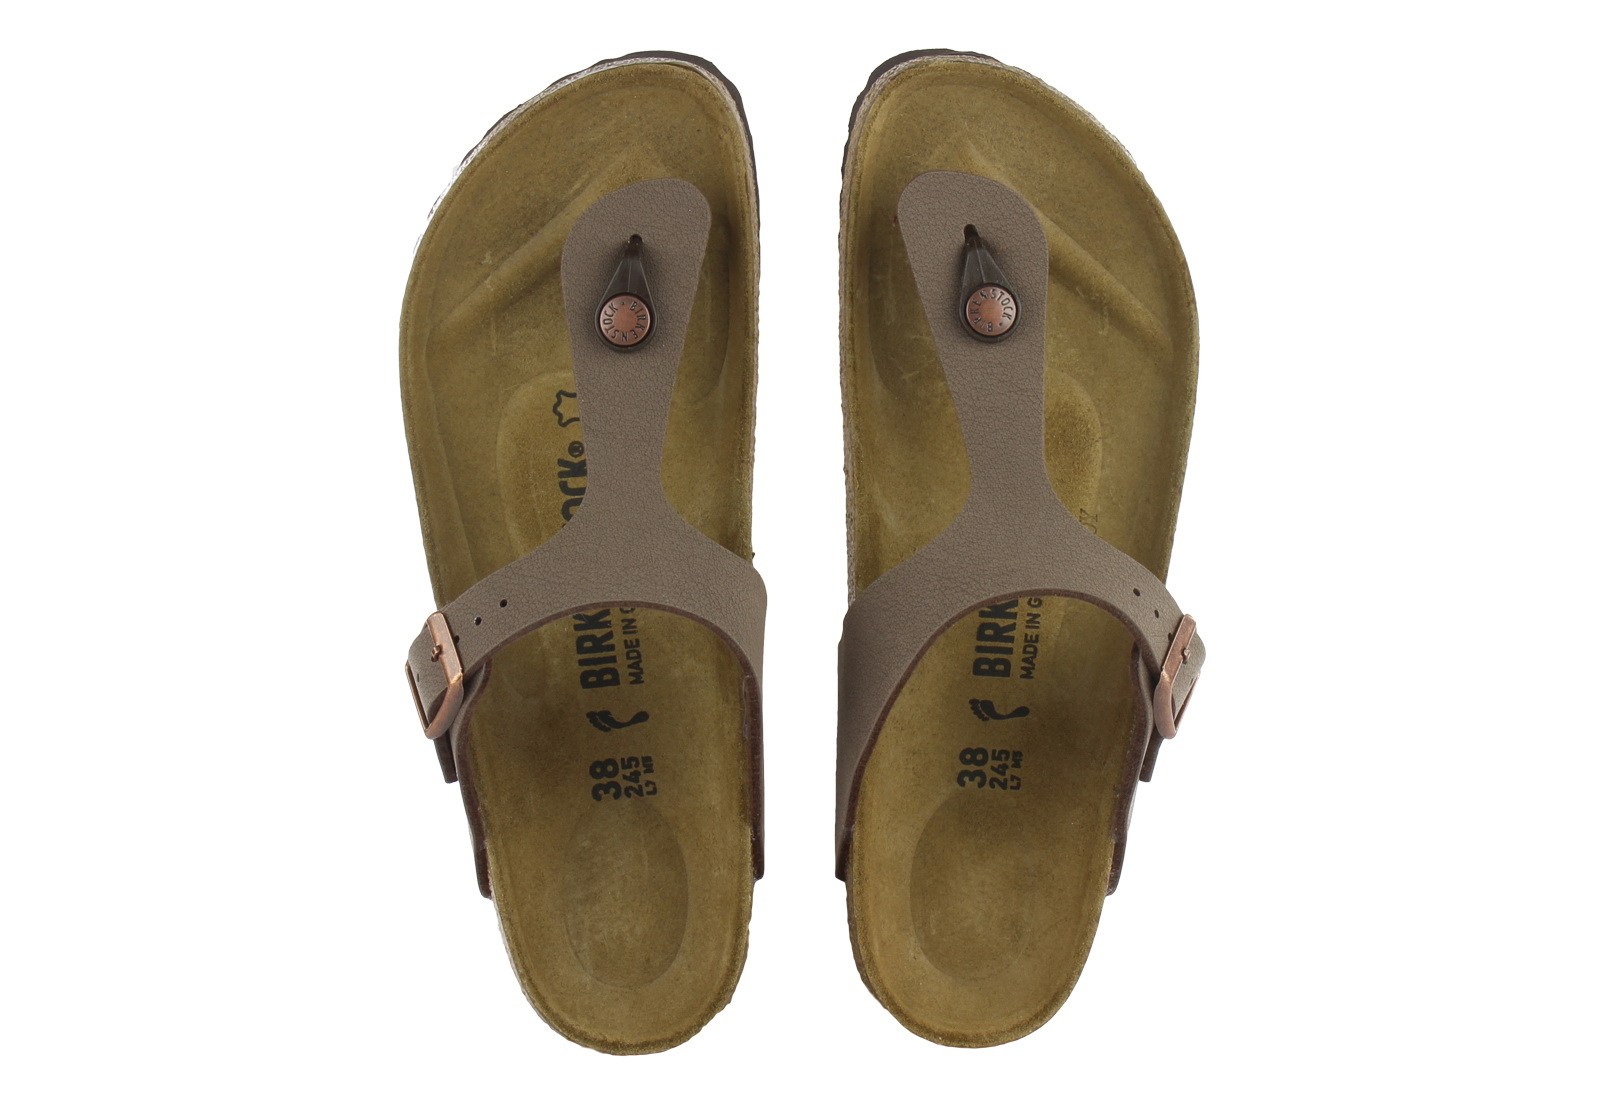 Birkenstock Slippers - Gizeh - 043753-moc - Online shop for sneakers, shoes and boots